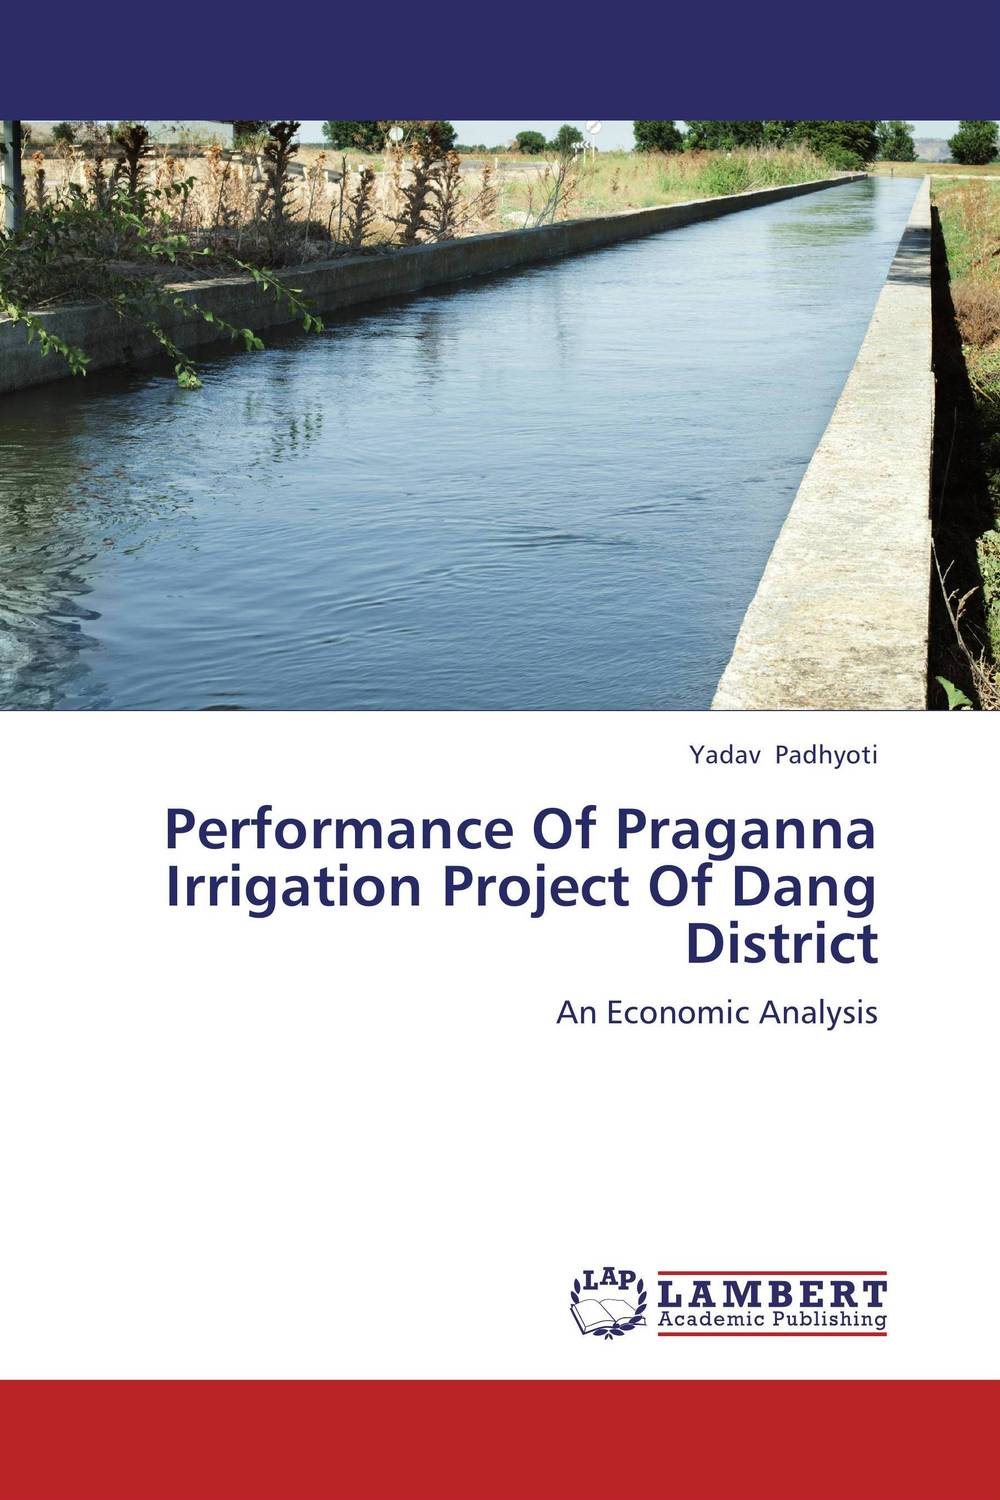 Performance Of Praganna Irrigation Project Of Dang District kenneth rosen d investing in income properties the big six formula for achieving wealth in real estate